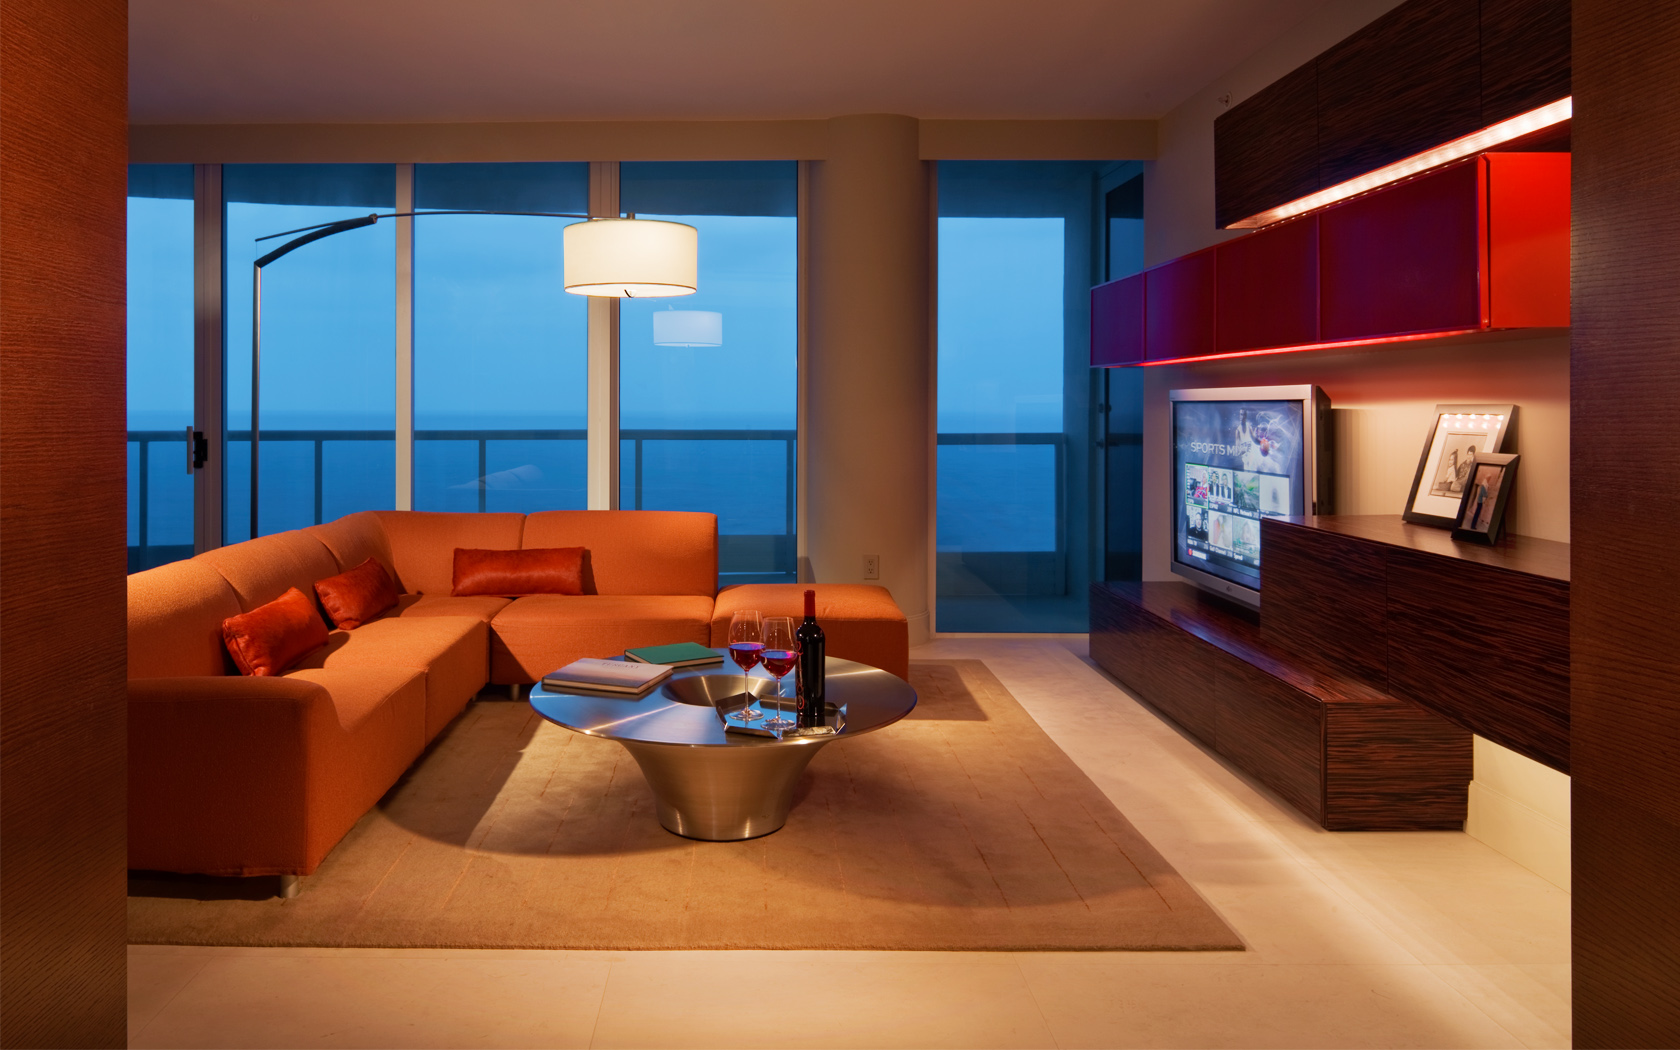 The interior design is modern with a warmth created by a wood paneled ceiling. by Michael Wolk Design Associates